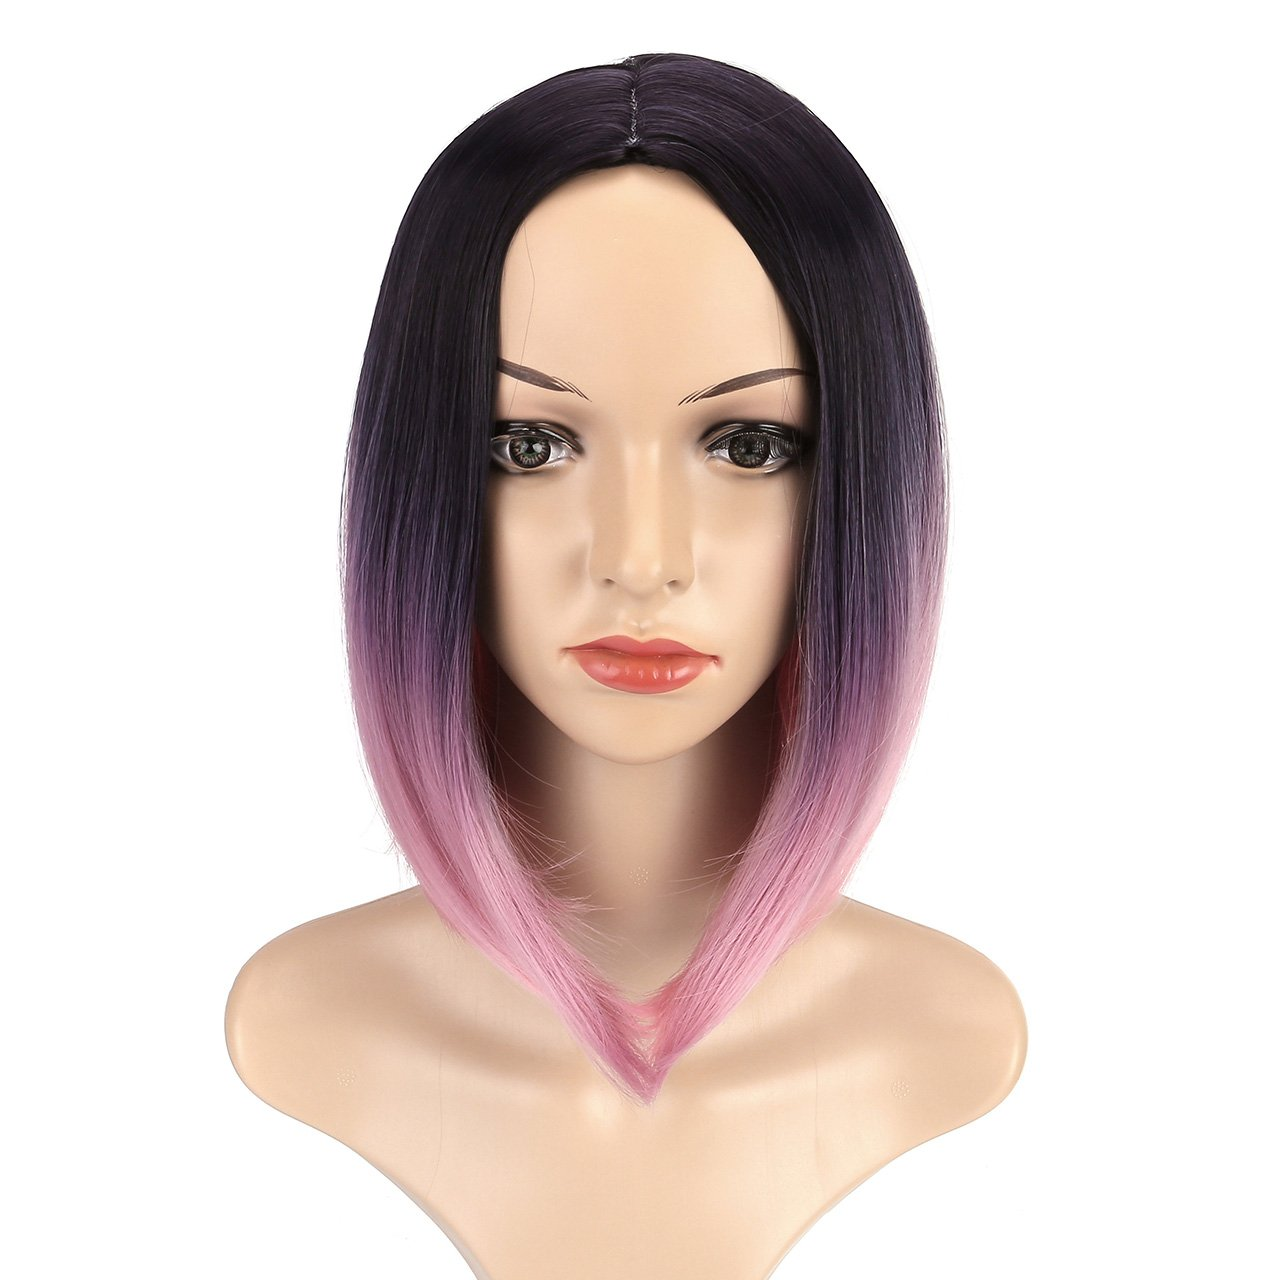 CCbeauty Ombre Bob Wig Straight With Middle Part Short Fashion Wig Cosplay Pink Ombre Wig Full Head Synthetic Wig for Women 14 Inches